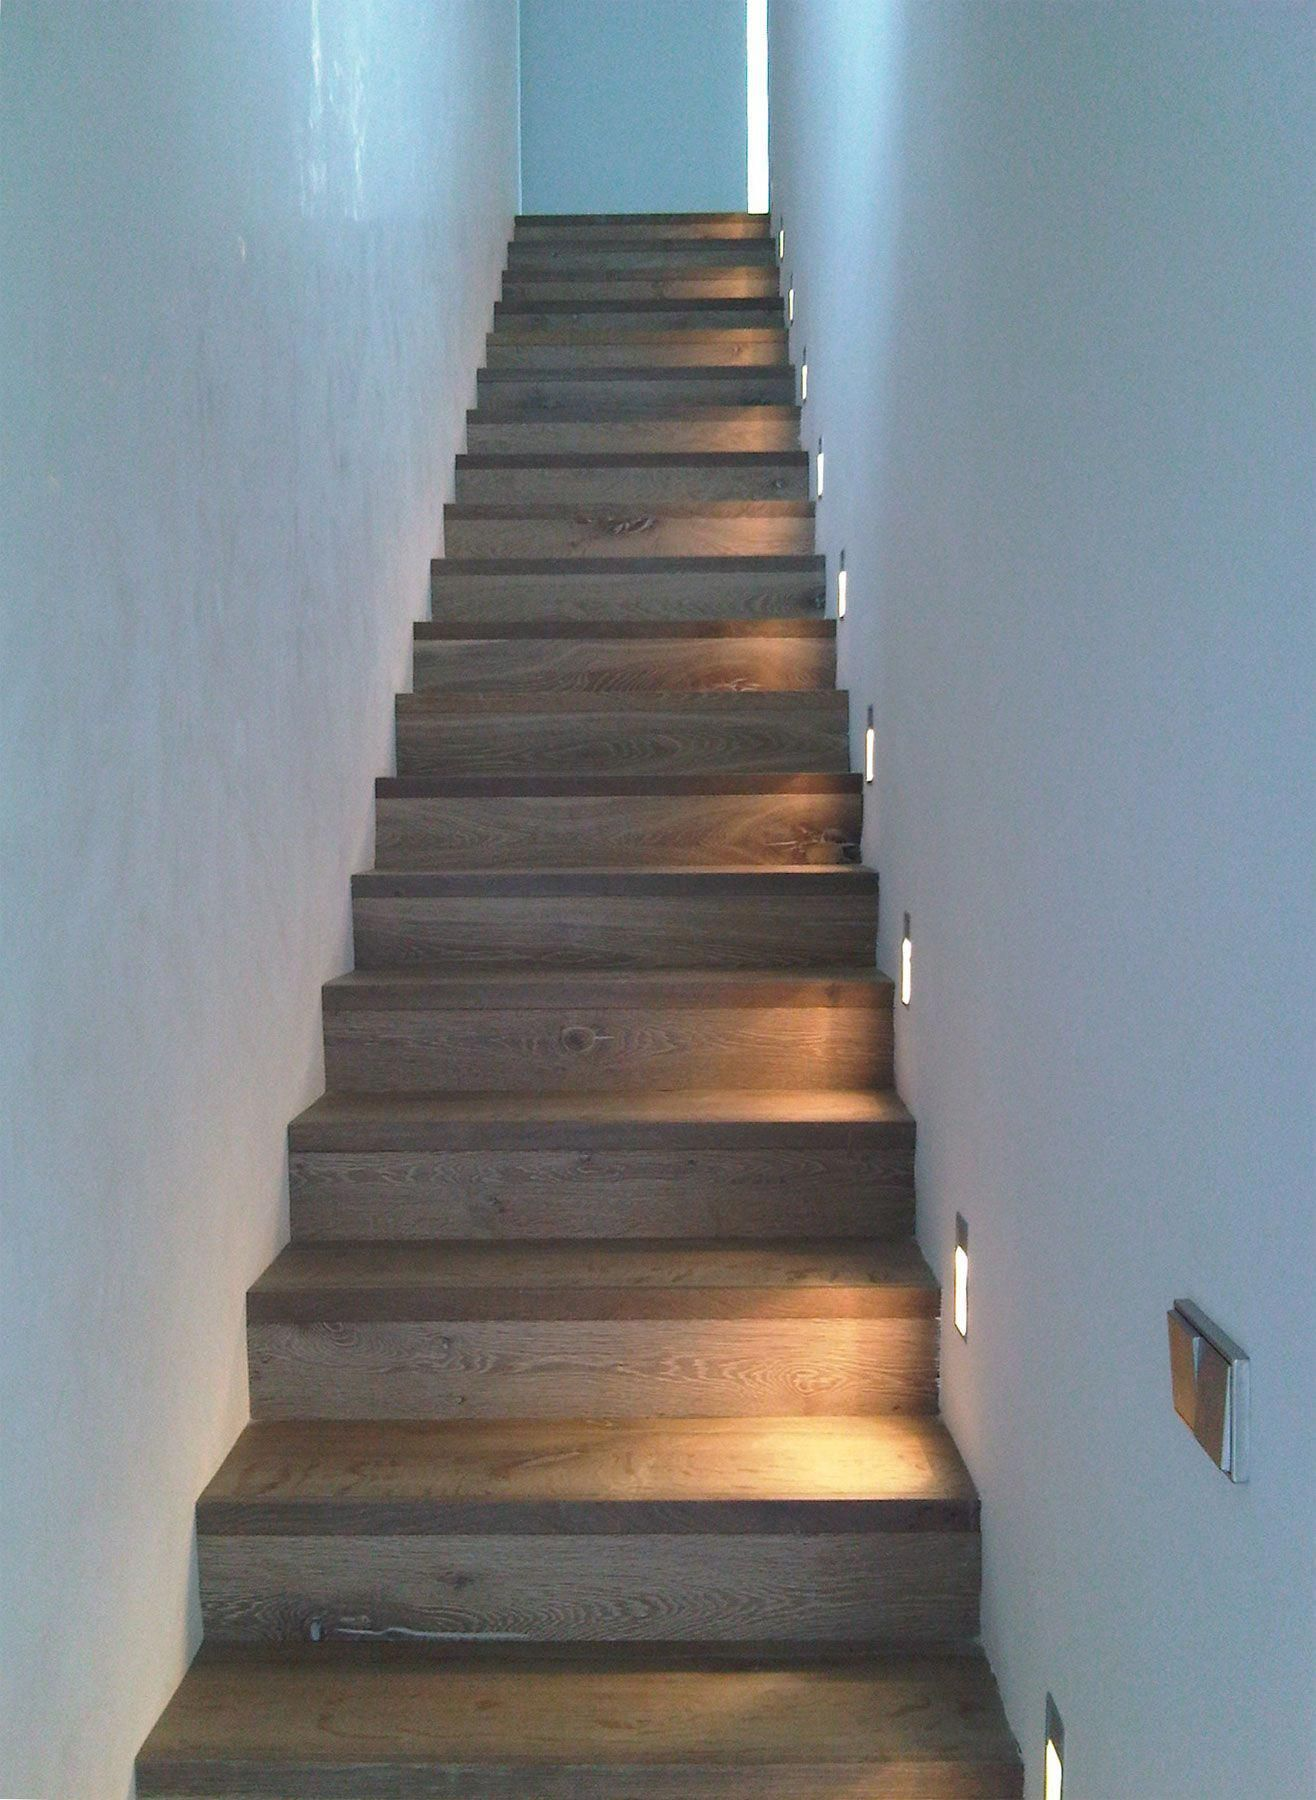 Home Decoration Do It Yourself In 2020 Treppenbeleuchtung Treppenhaus Beleuchtung Und Treppen Licht